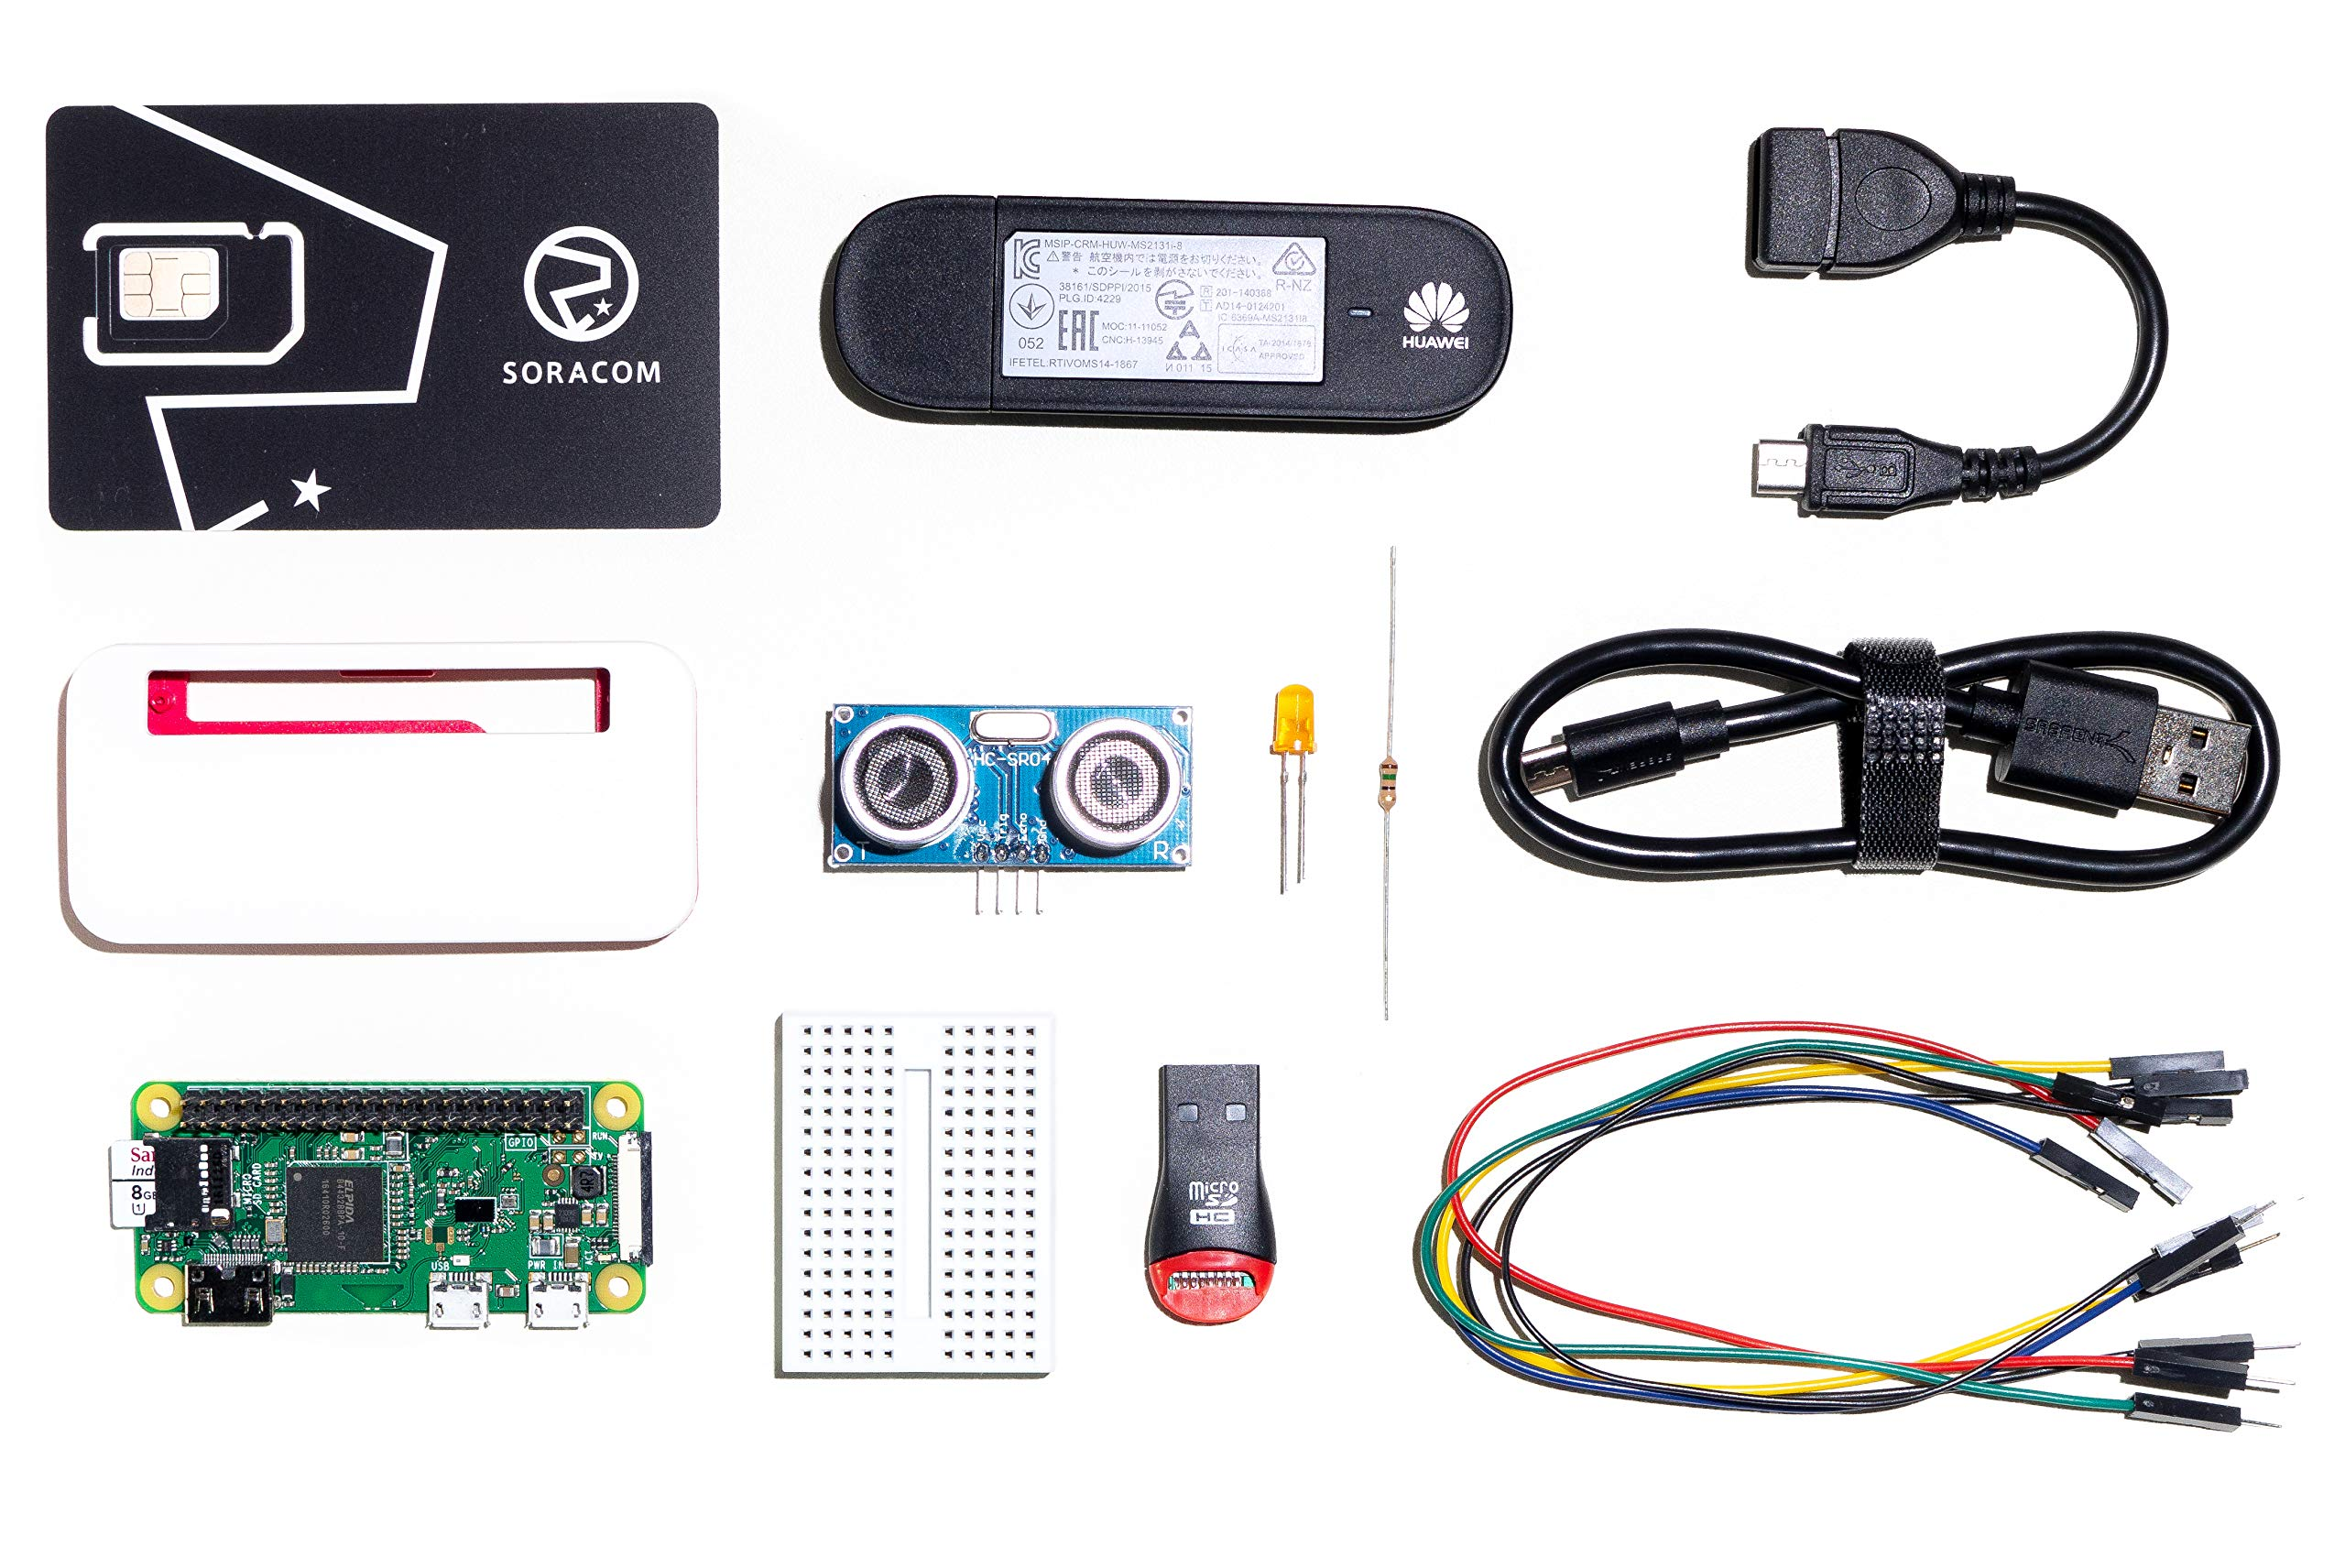 SORACOM Cellular IoT Starter Kit with Raspberry Pi Zero WH and IoT Sim Card | Dongle and 9 Essential Accessories | Create IoT Development Cellular Connect Products | 16 GB by SORACOM (Image #1)